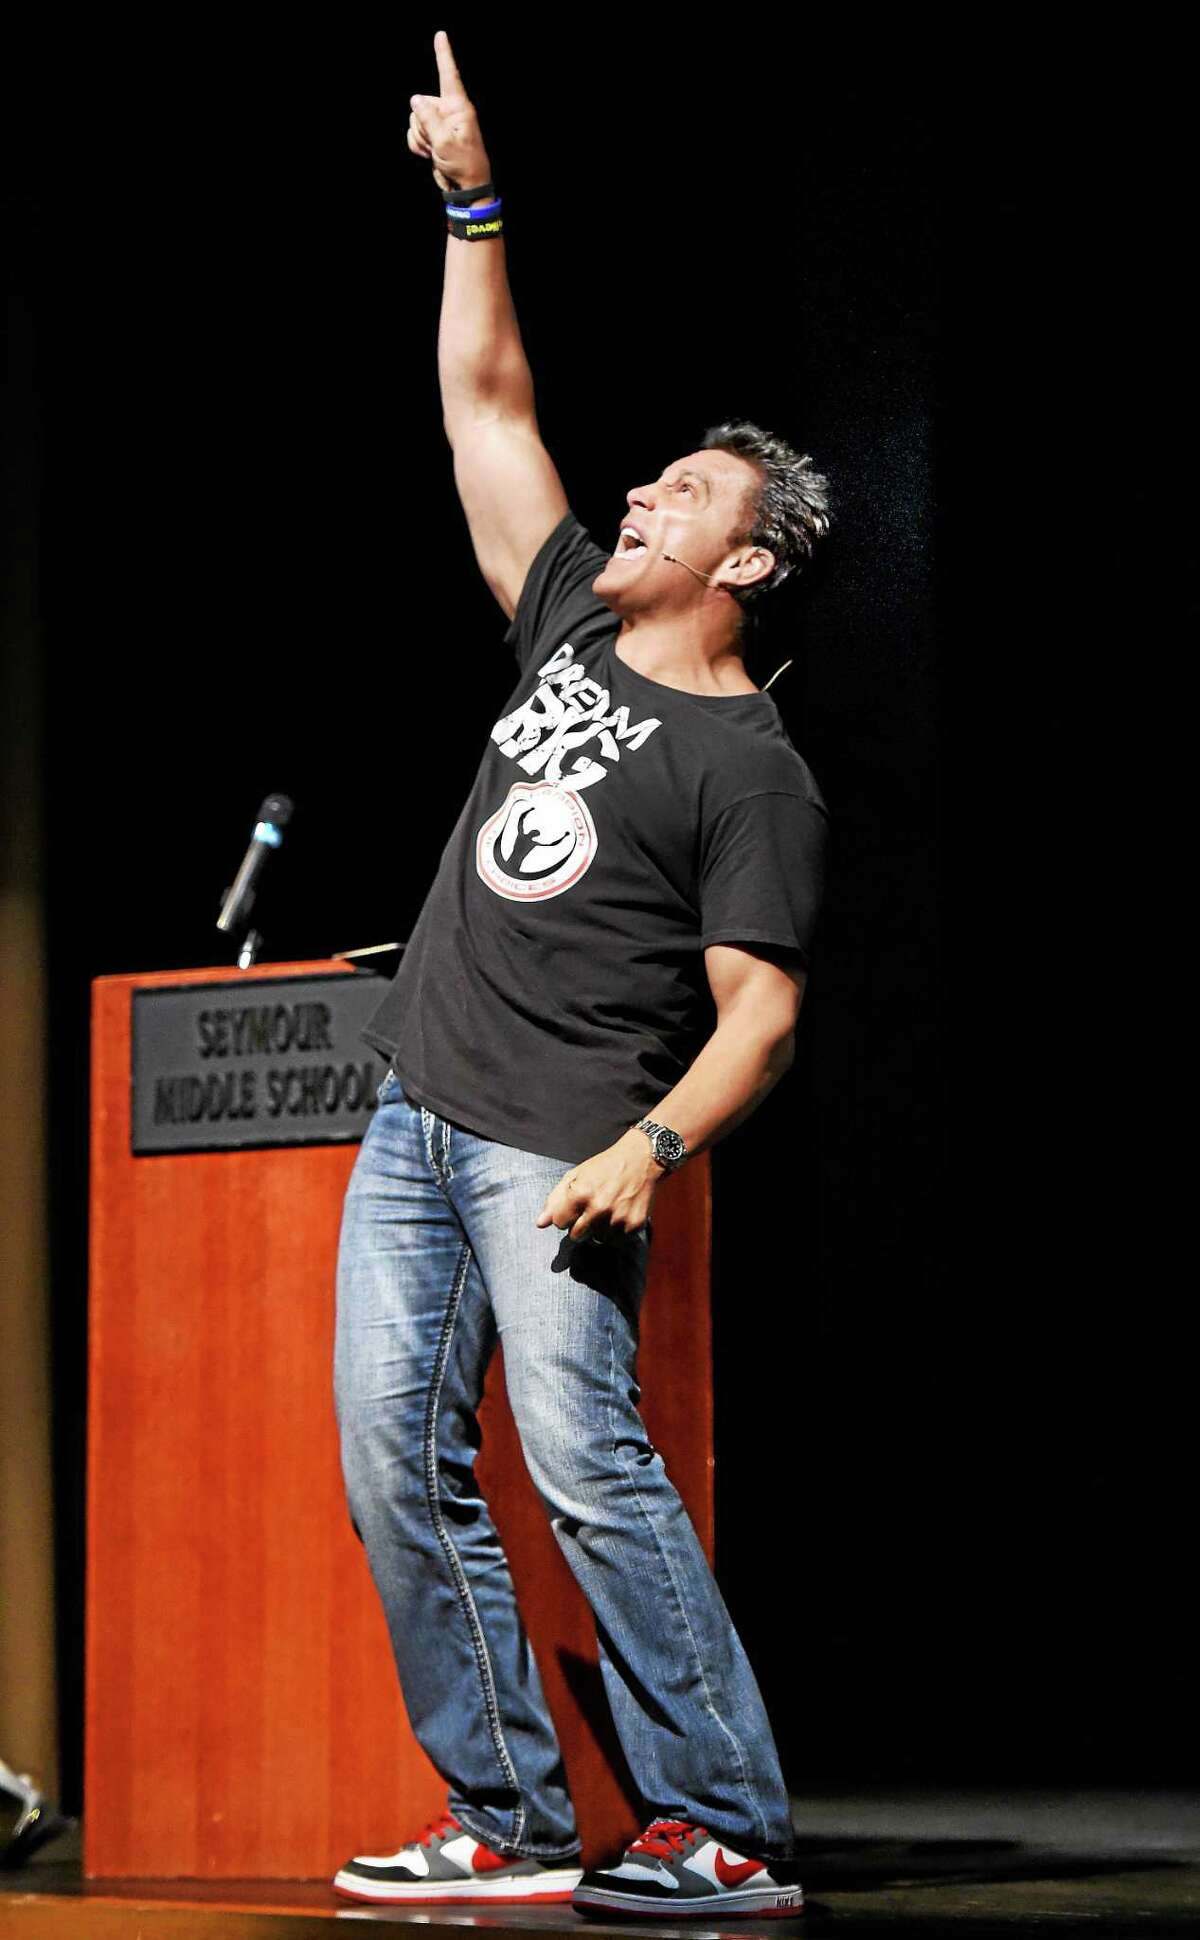 Former professional wrestler Marc Mero delivers an inspirational talk to Seymour Middle School students Tuesday about life choices, bullying and the importance of dreams and goals.